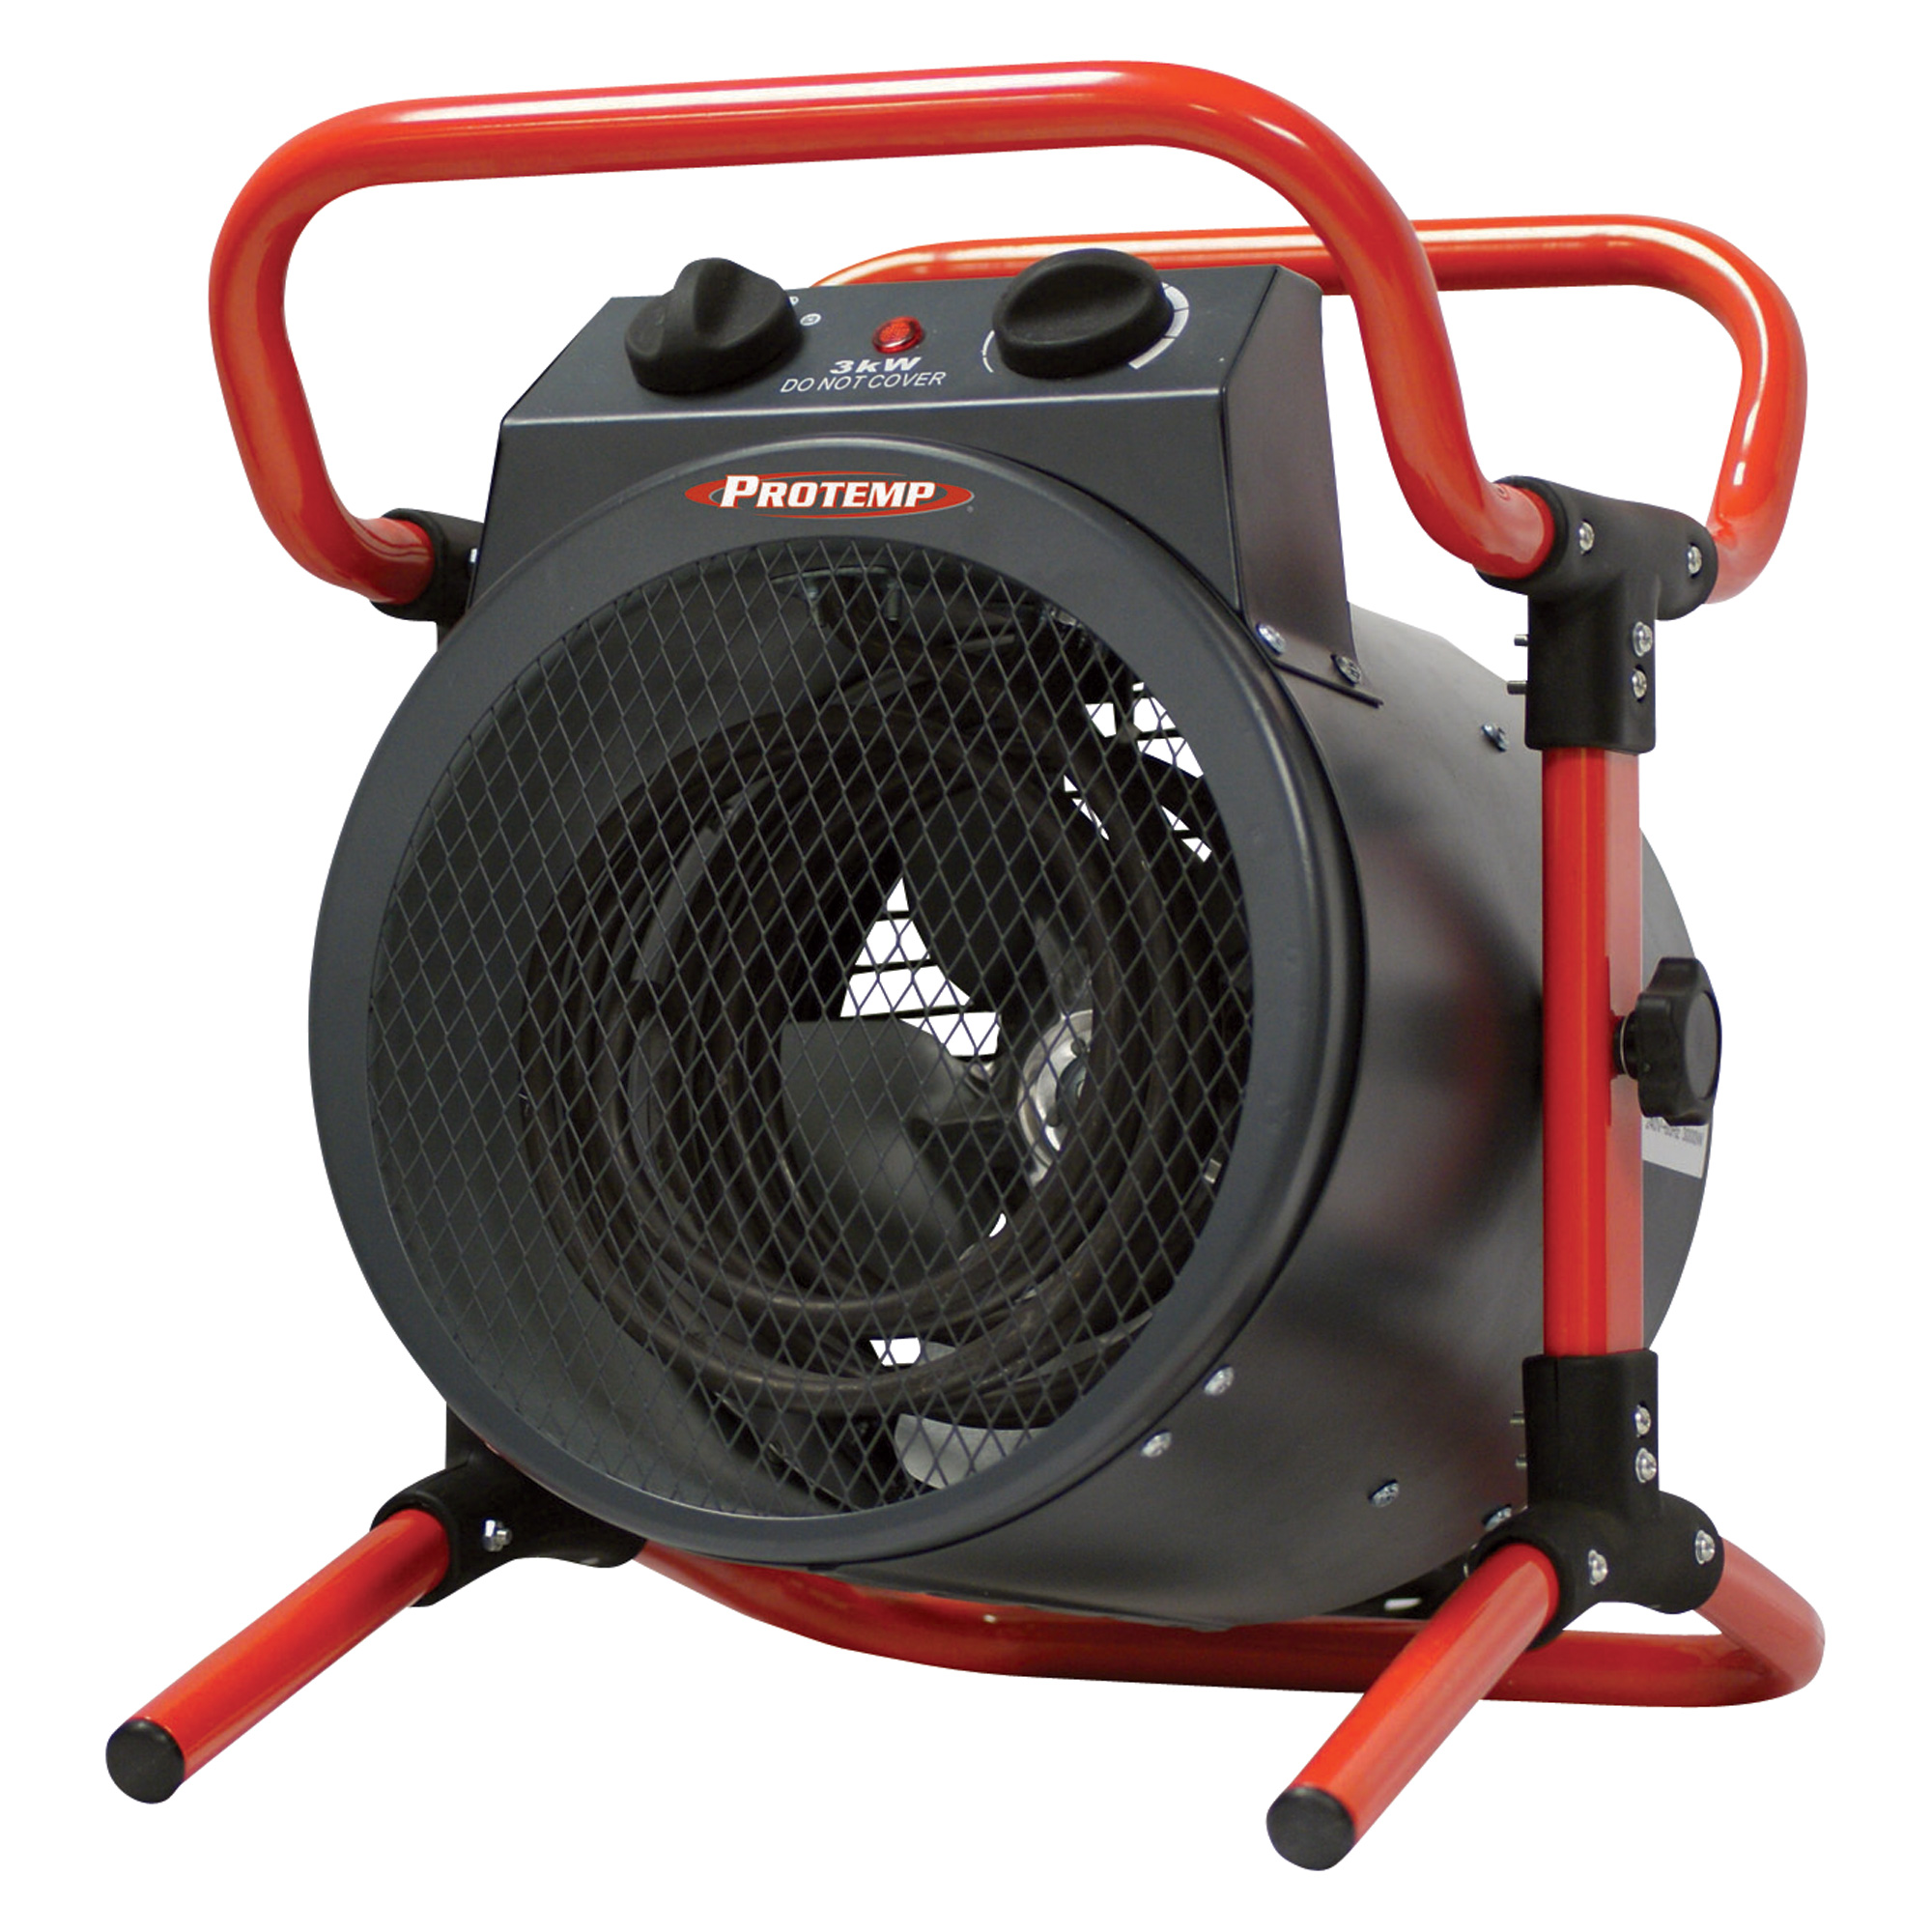 Garage Electric Heater (View 5 of 5)